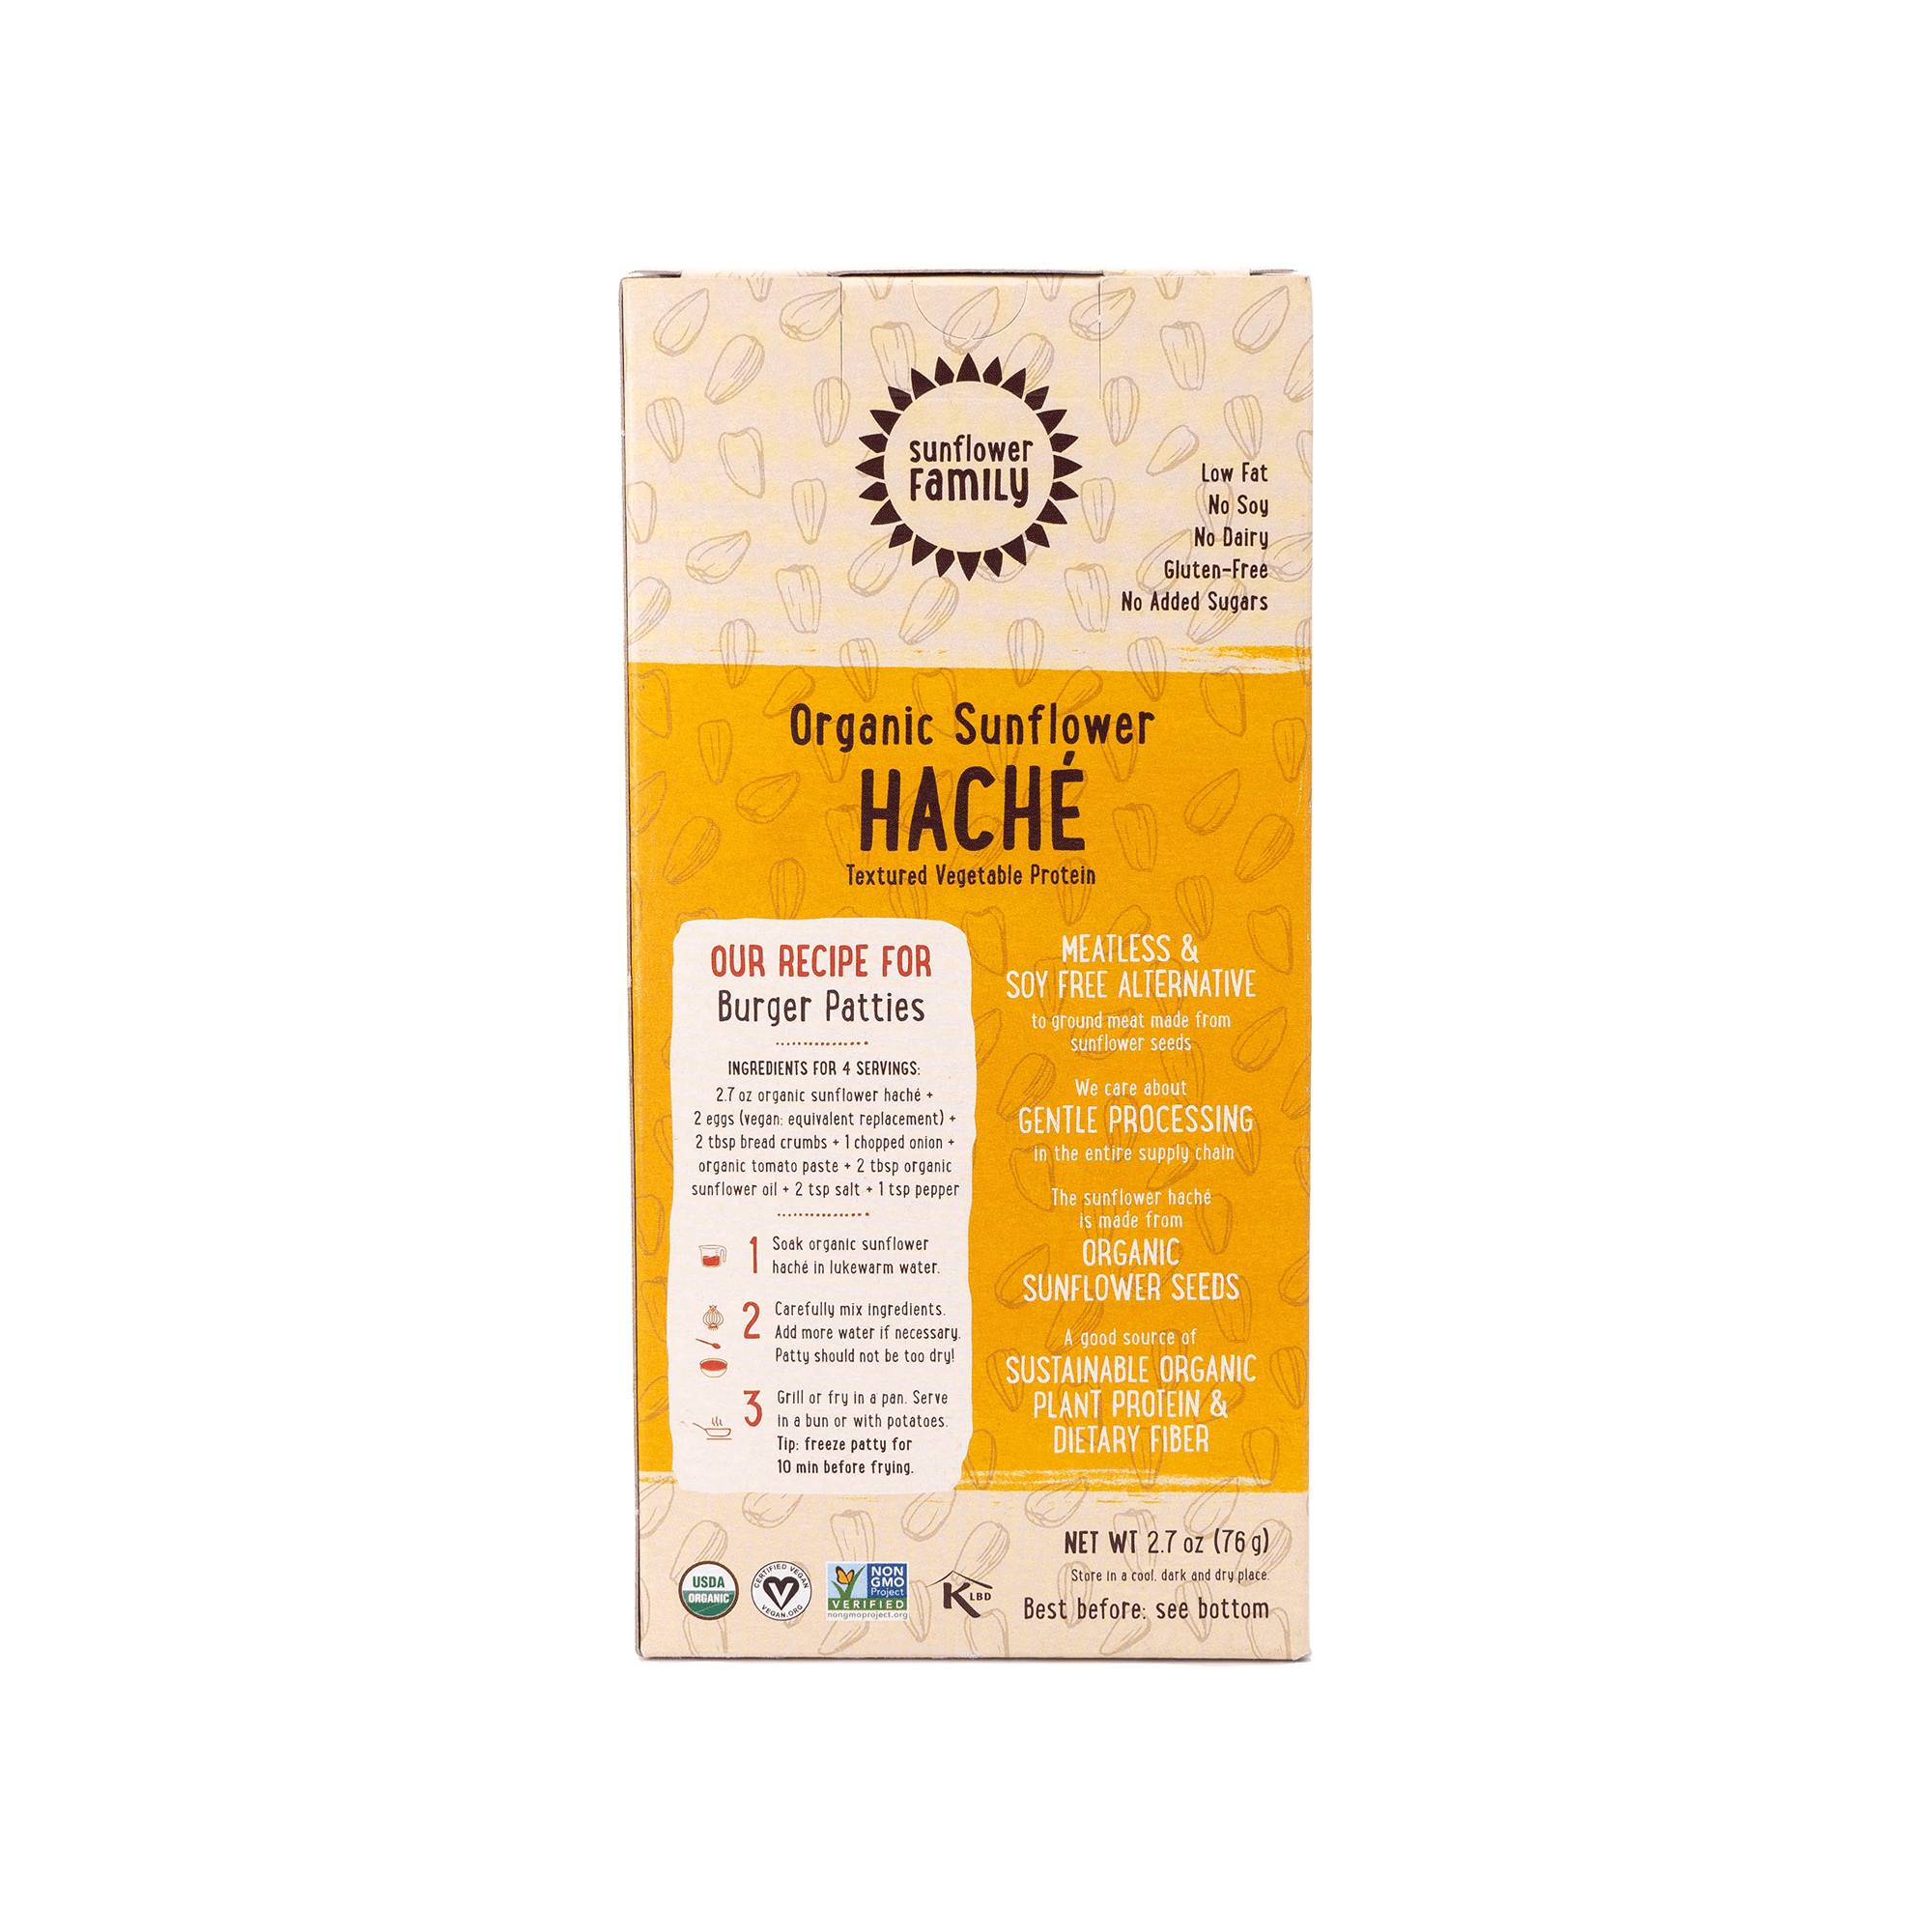 SunflowerFamily Organic Meat Substitute Sunflower Haché back of packaging